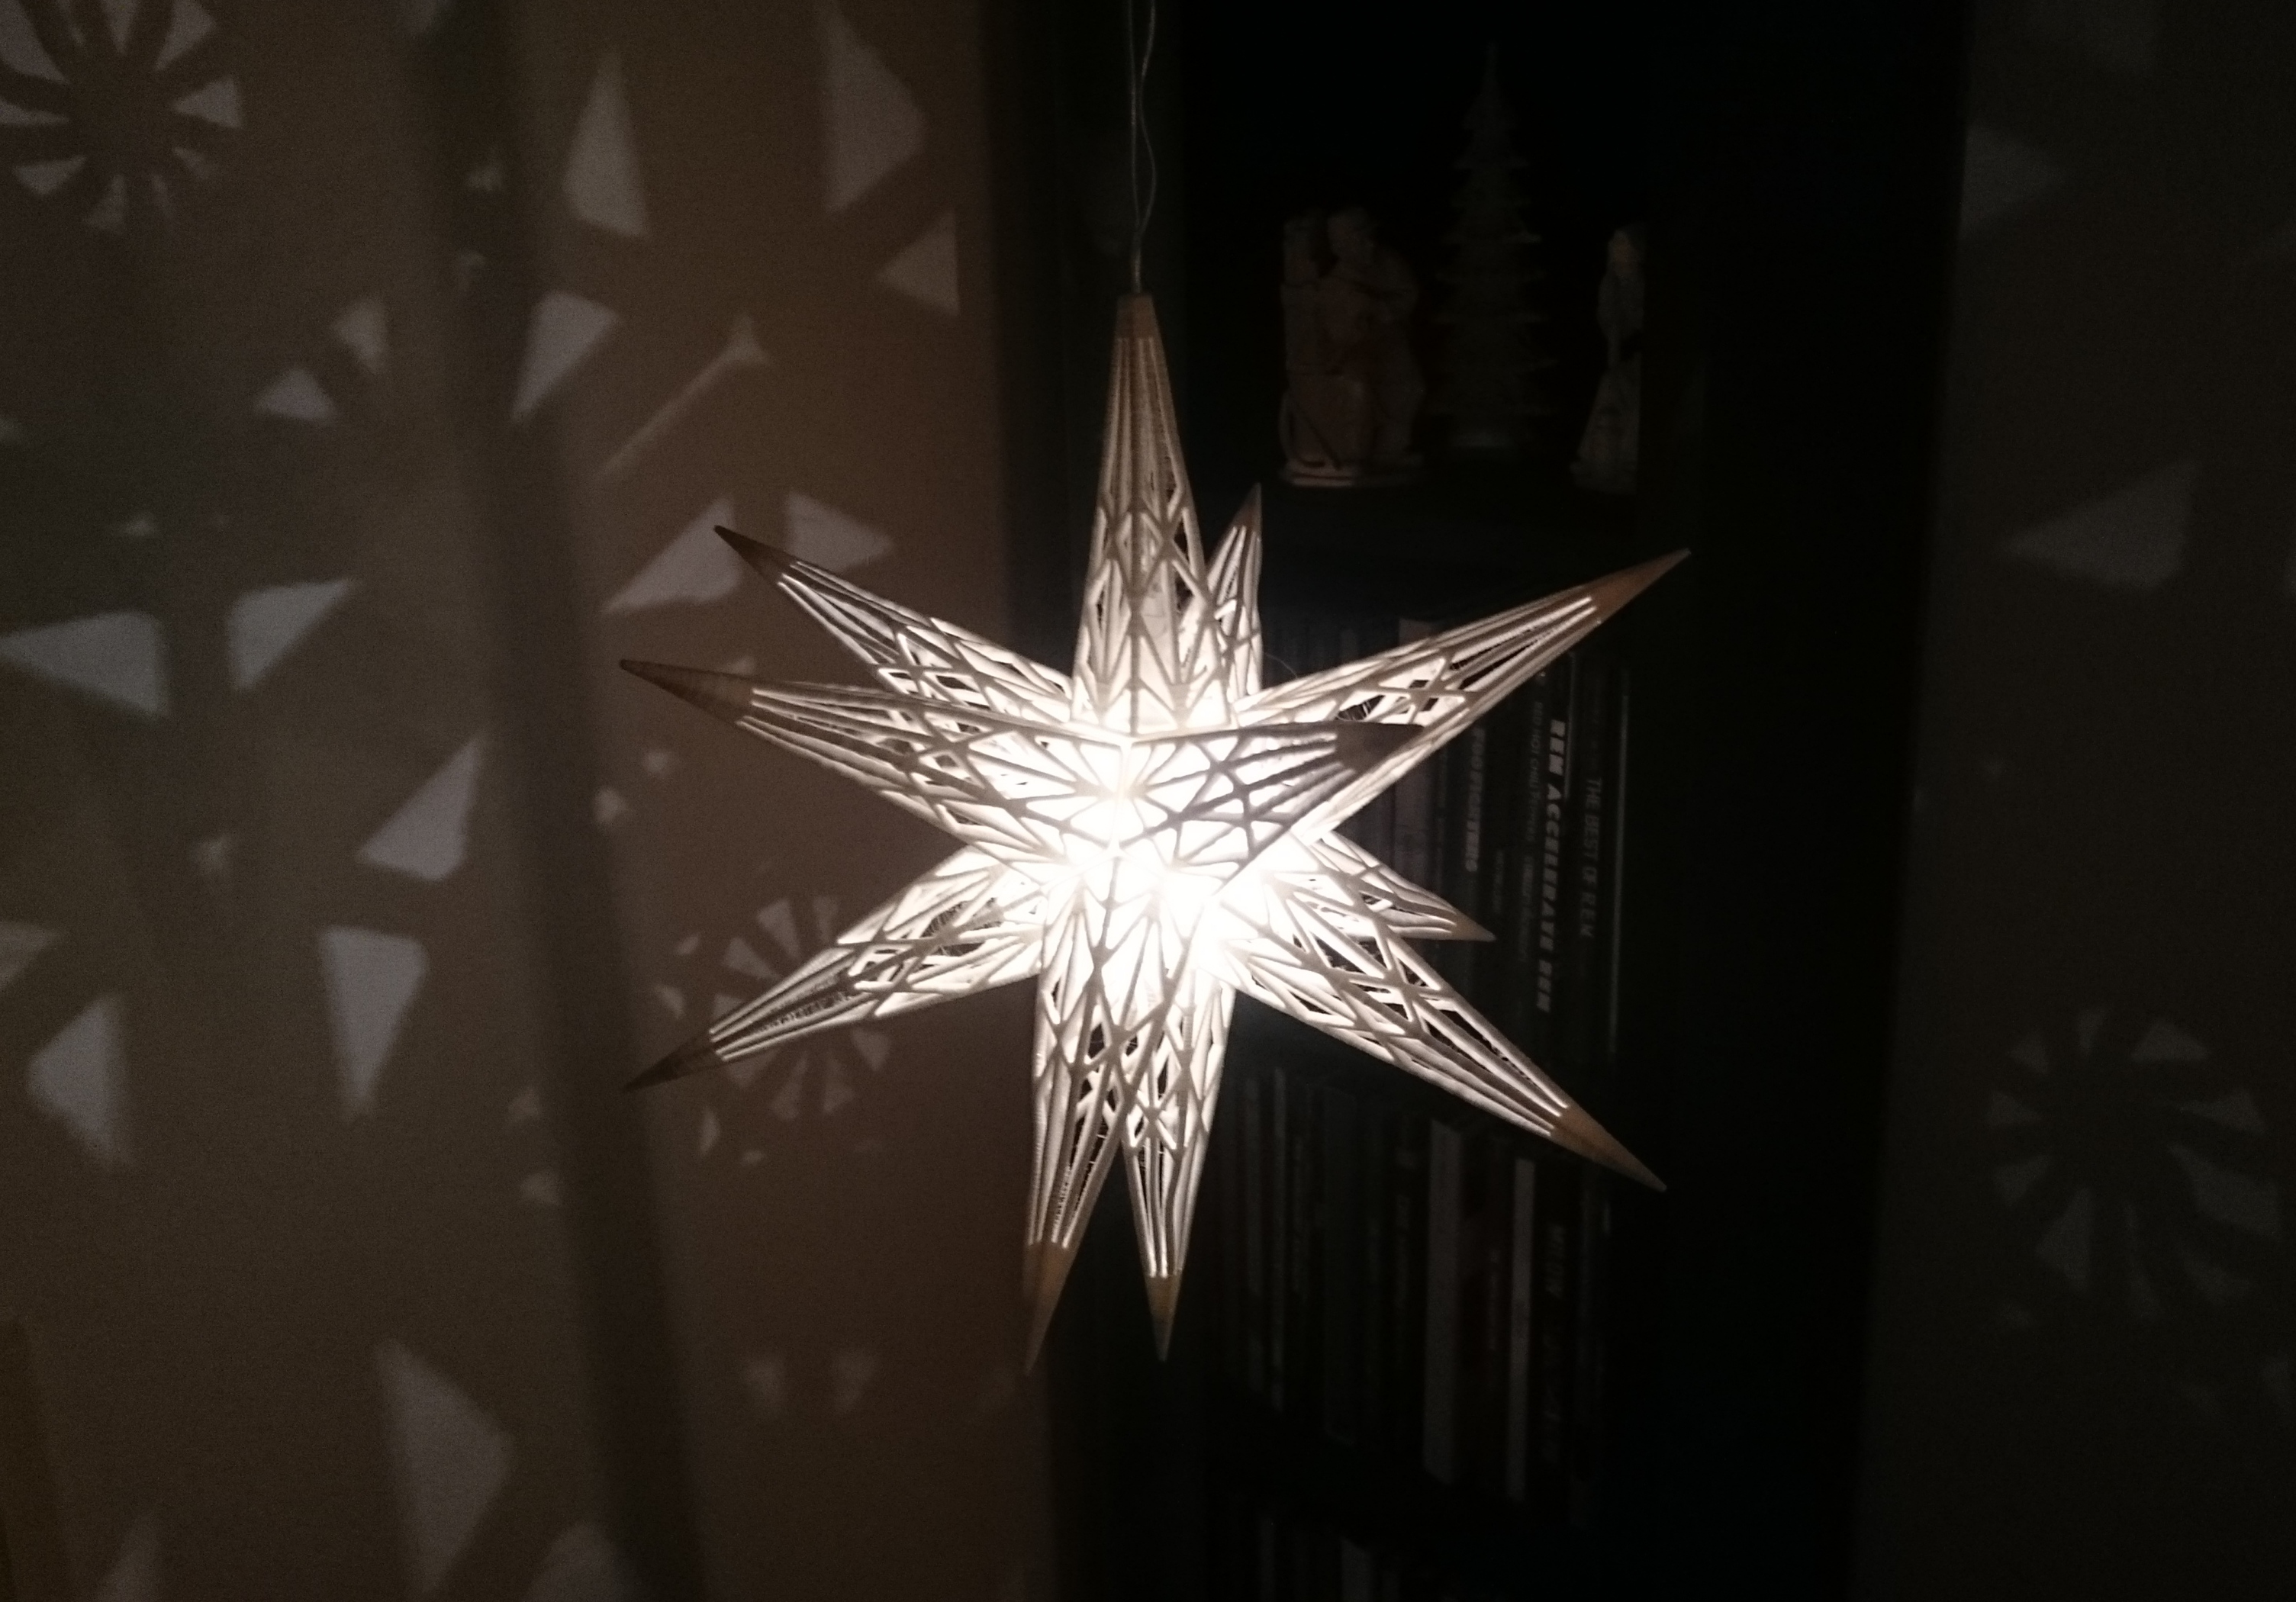 Weihnachtsstern Original Star Light Weihnachtsstern By 87squirrels Thingiverse